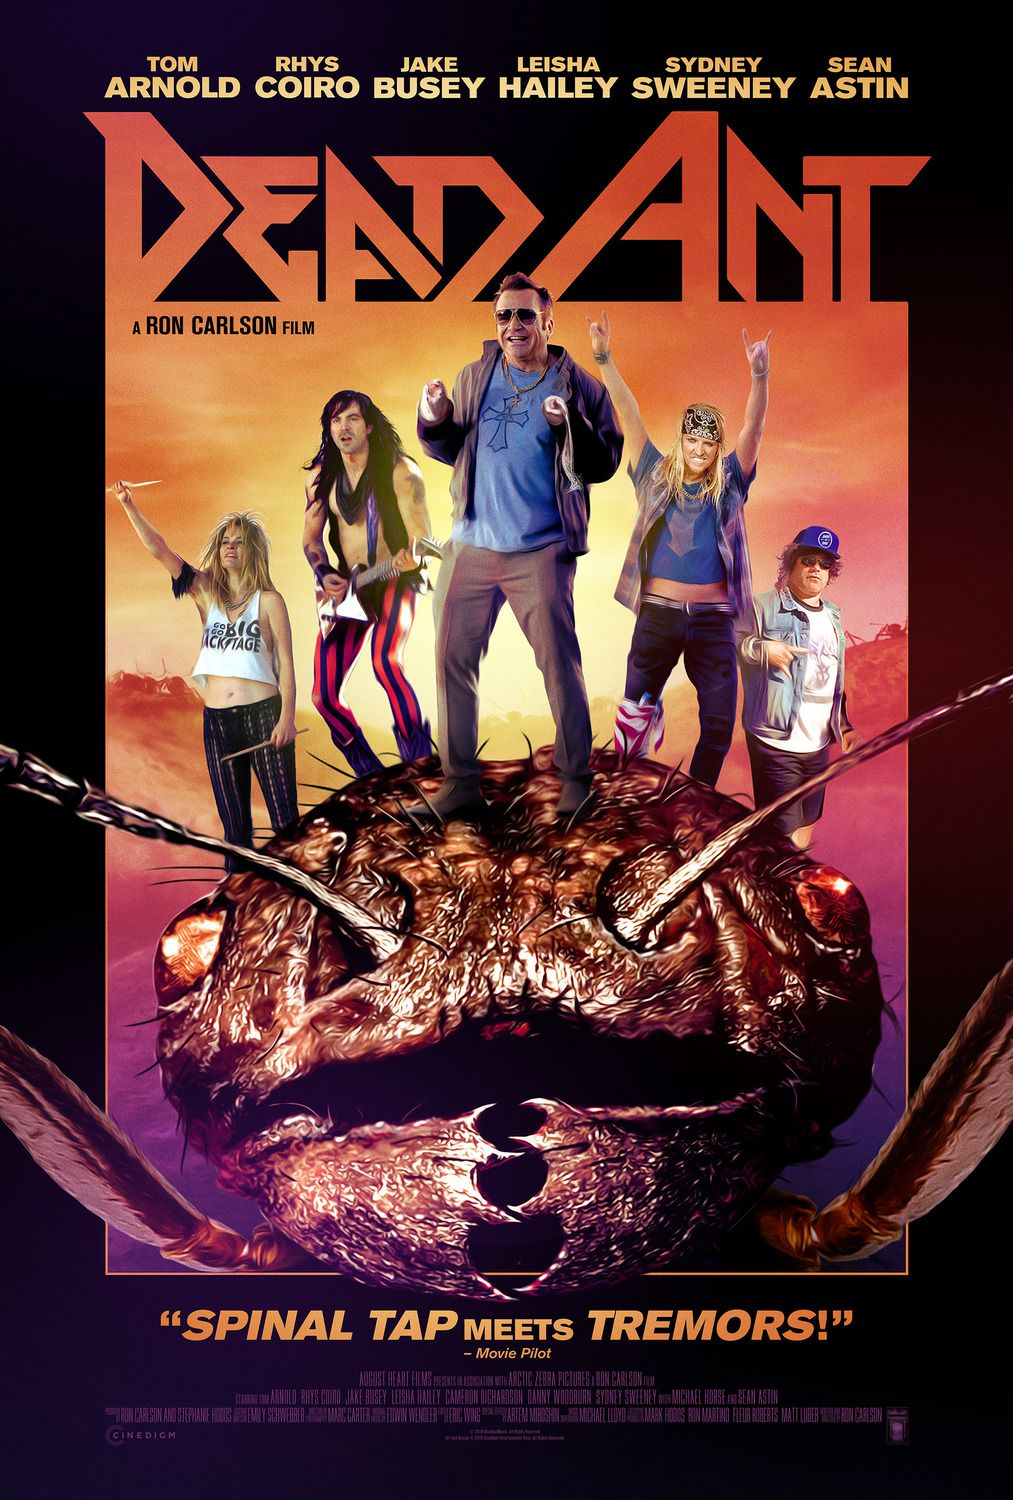 Dead Ant (2019)